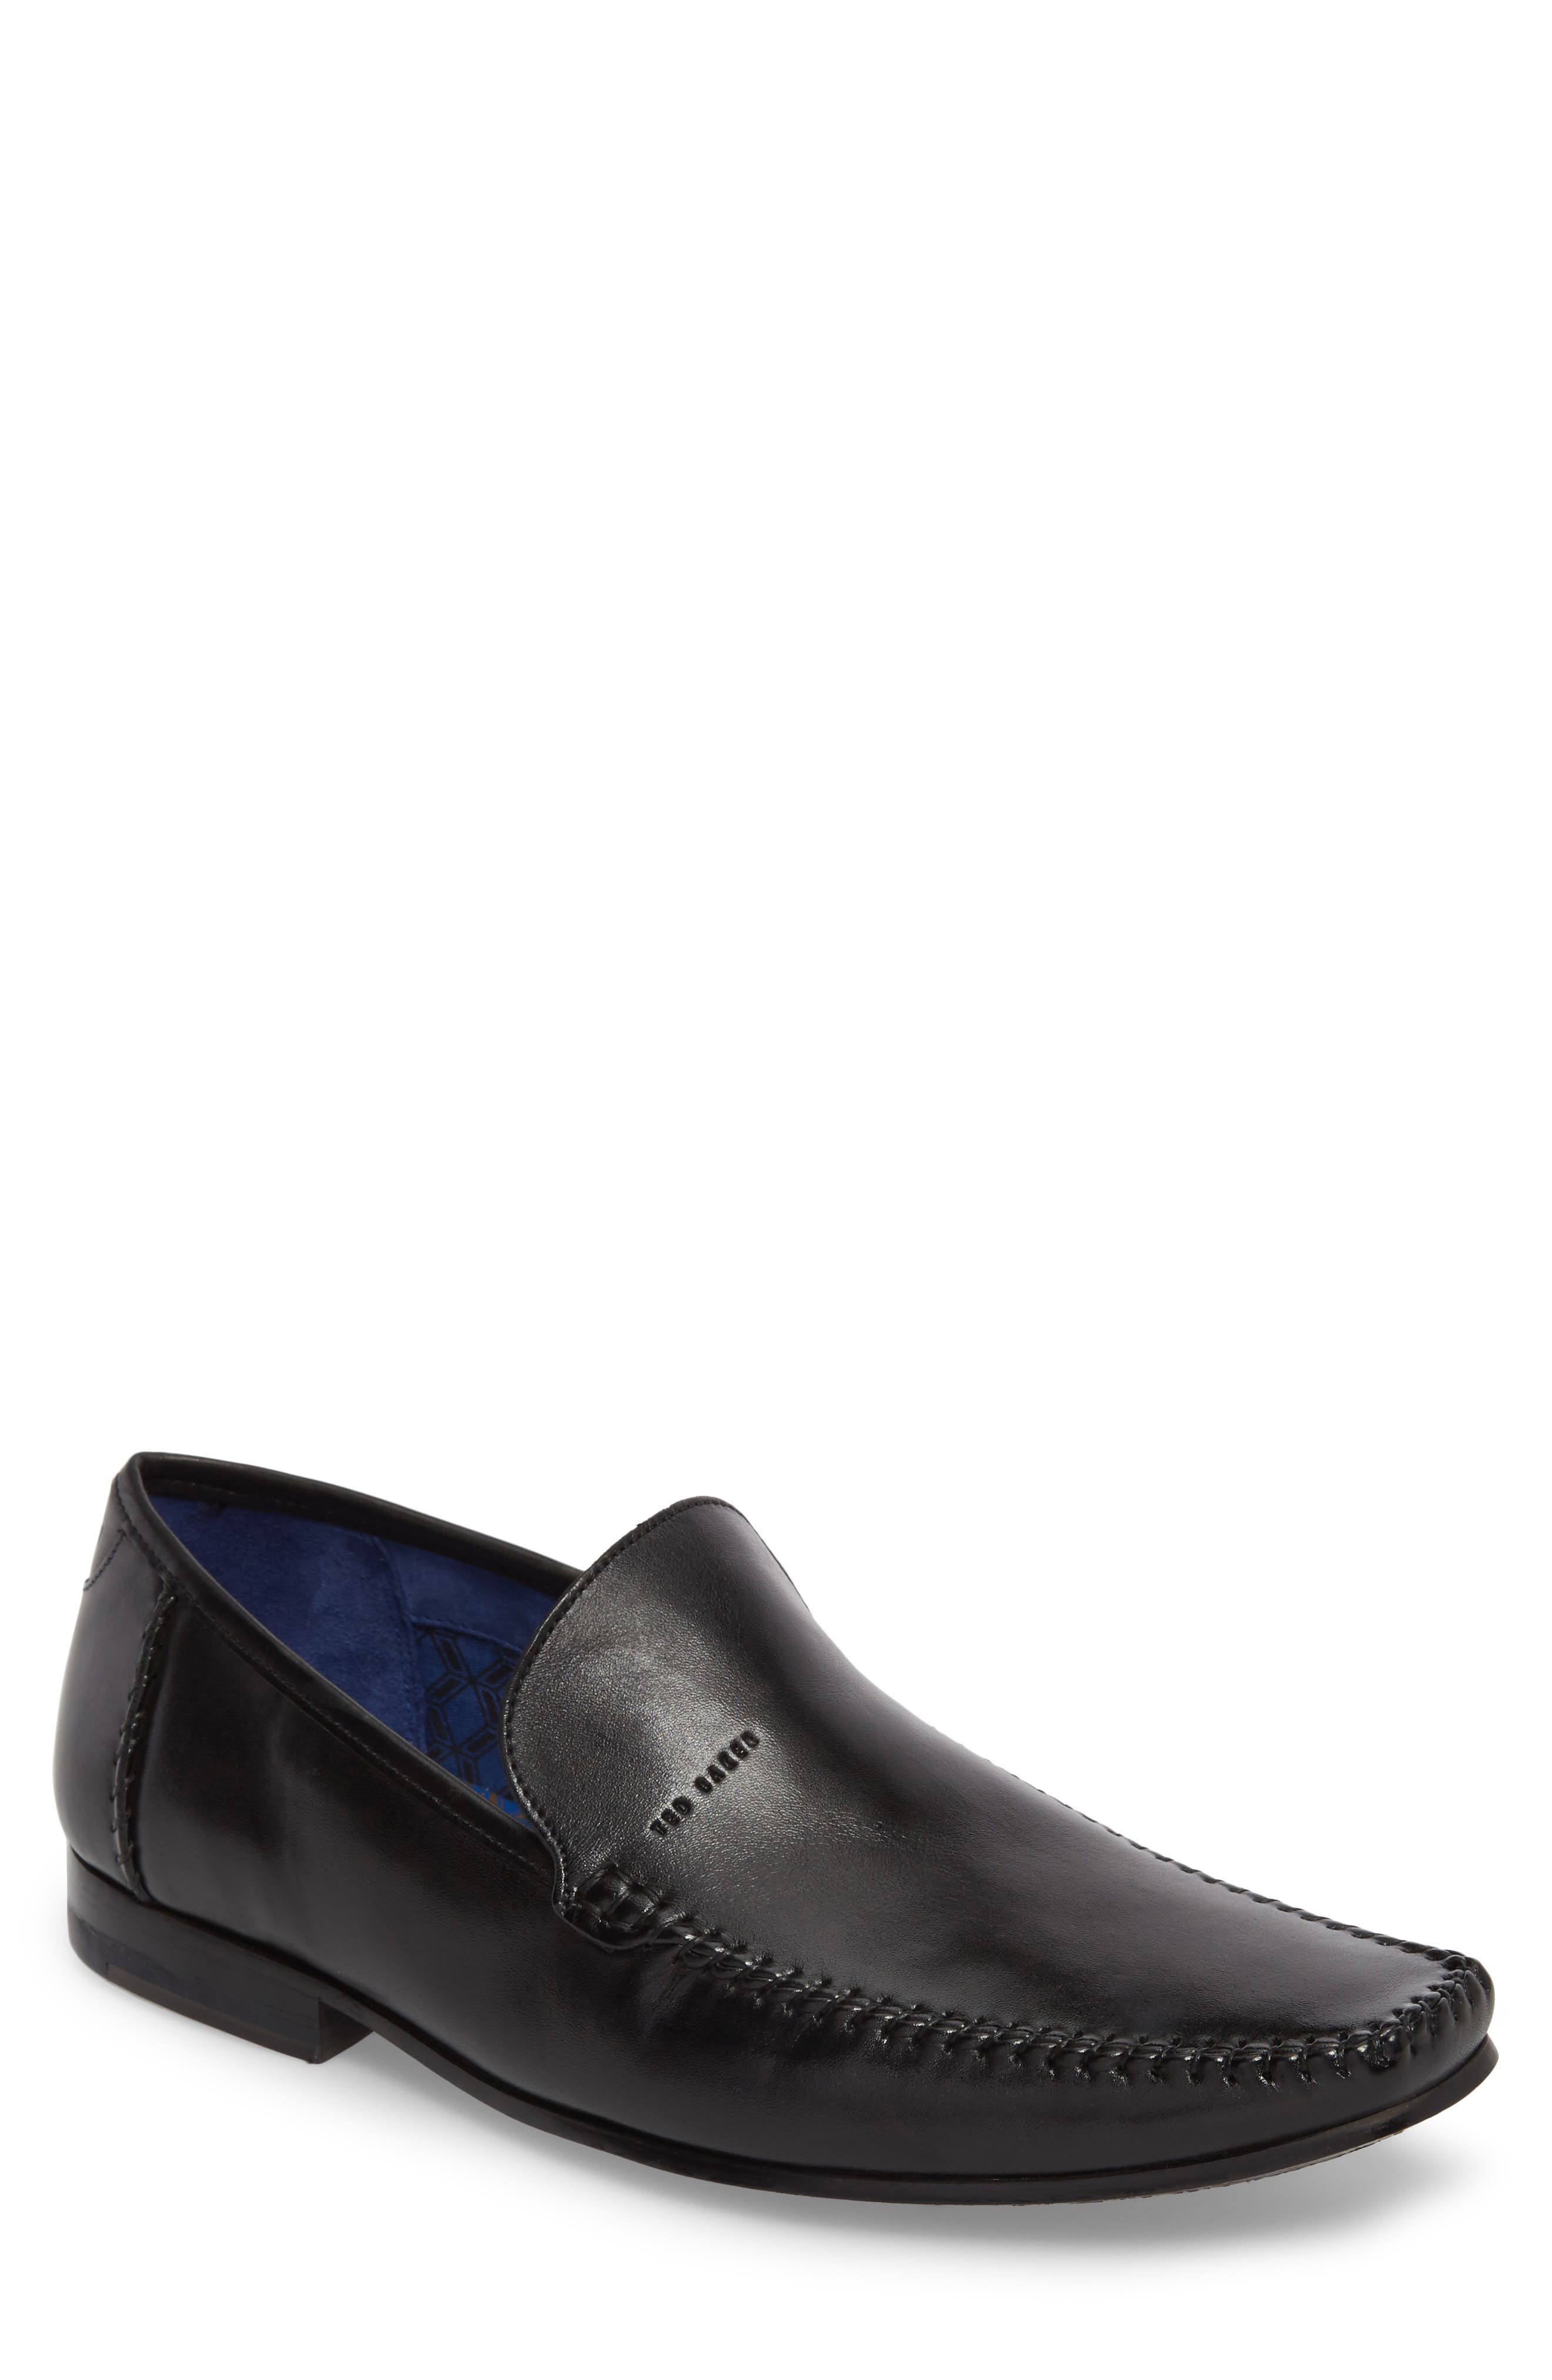 Bly 9 Venetian Loafer,                             Main thumbnail 1, color,                             BLACK LEATHER